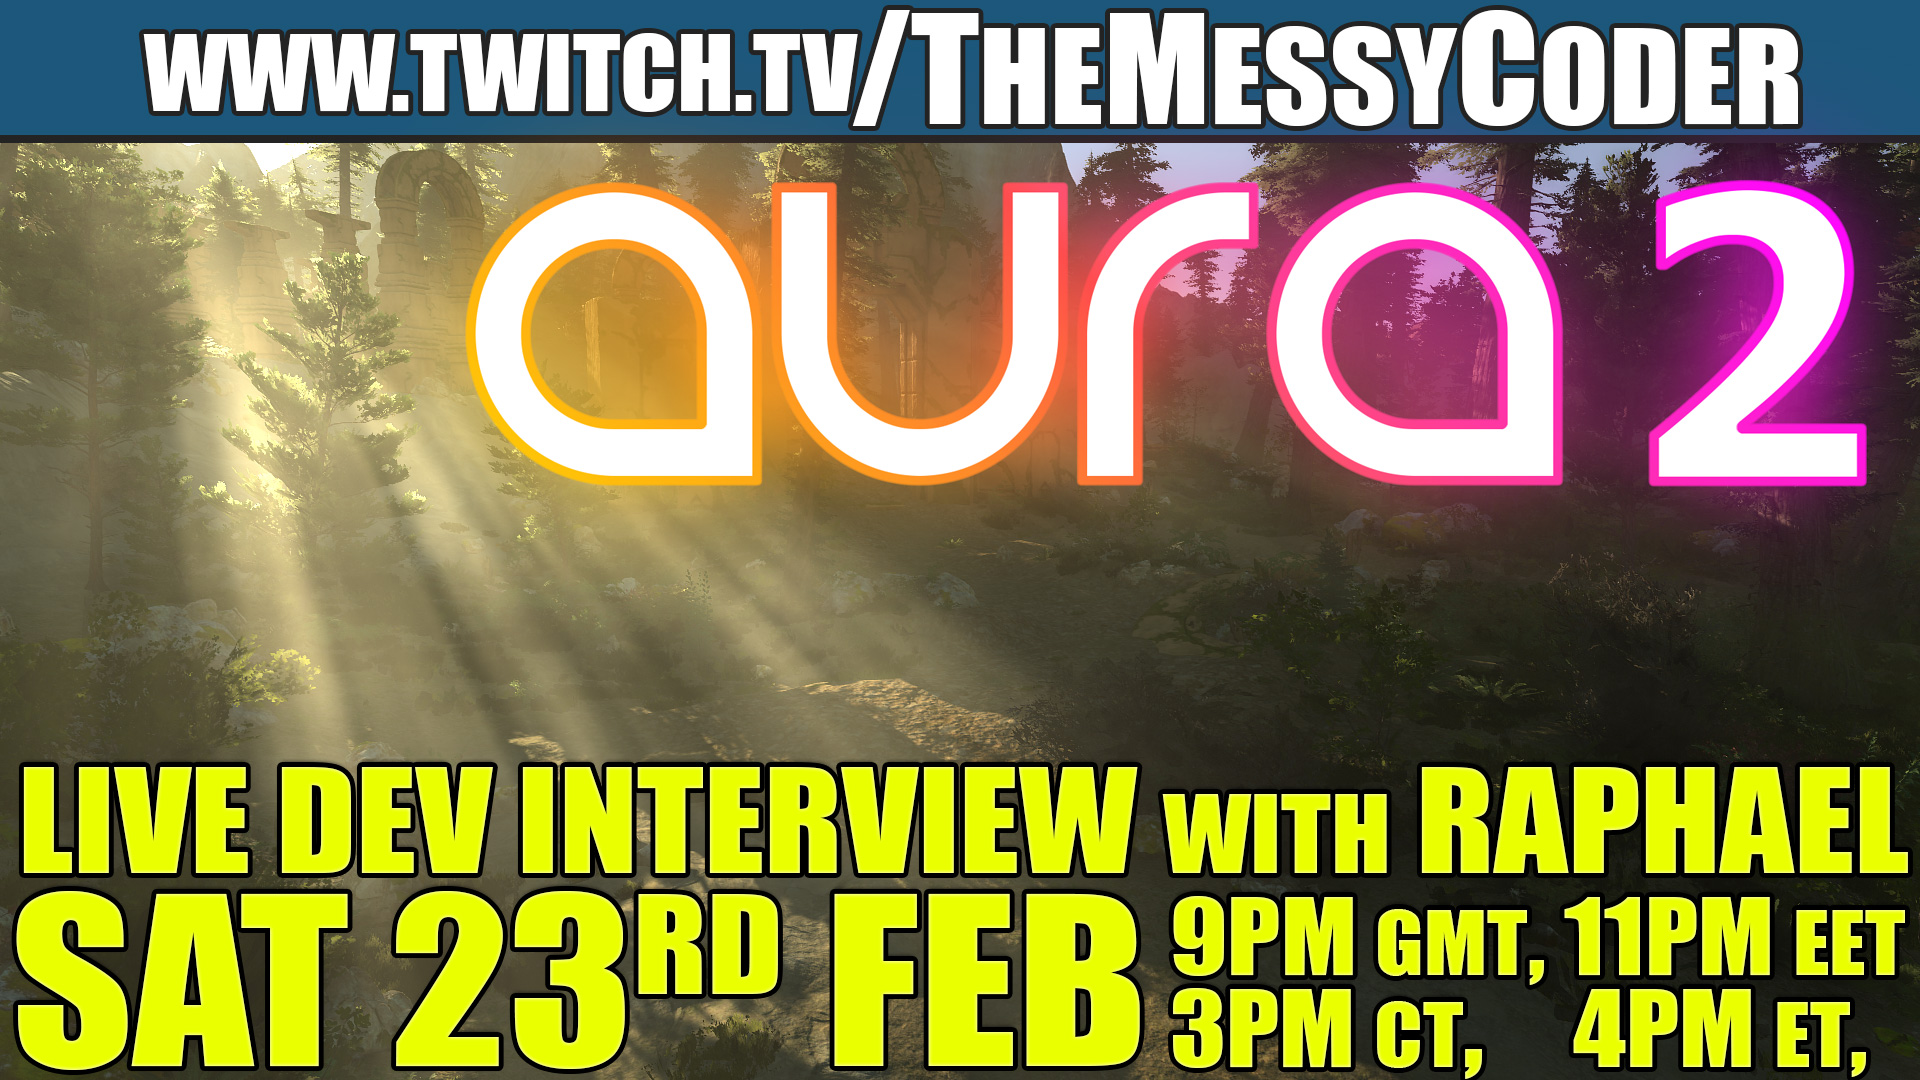 aura2_interview.jpg